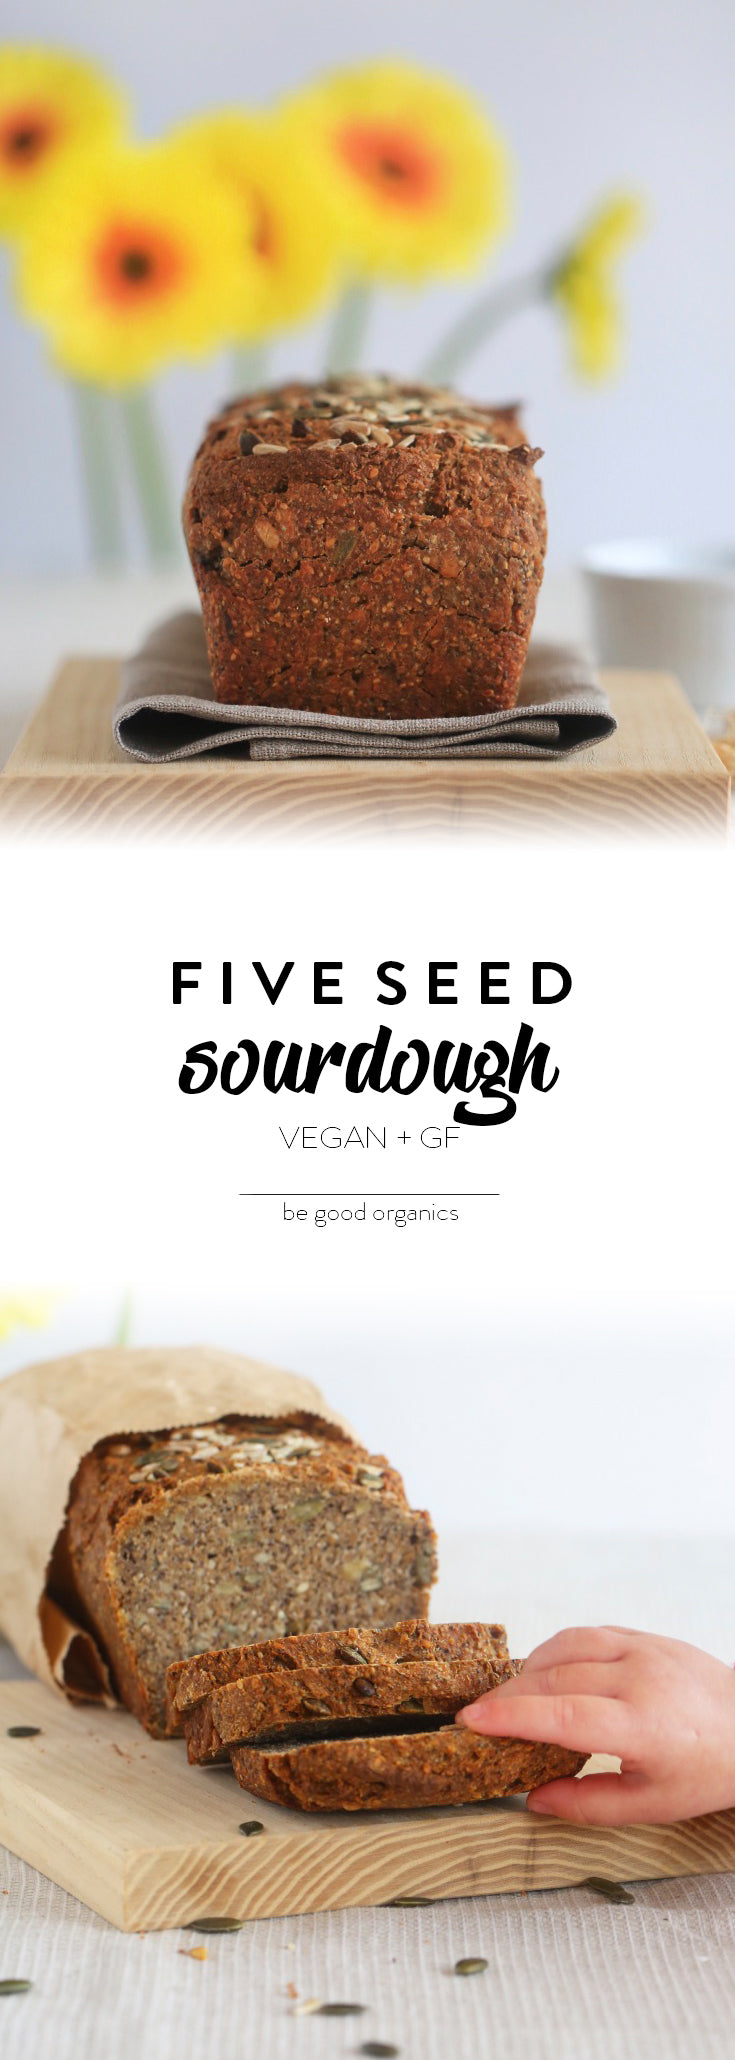 Five Seed Sourdough - Be Good Organics